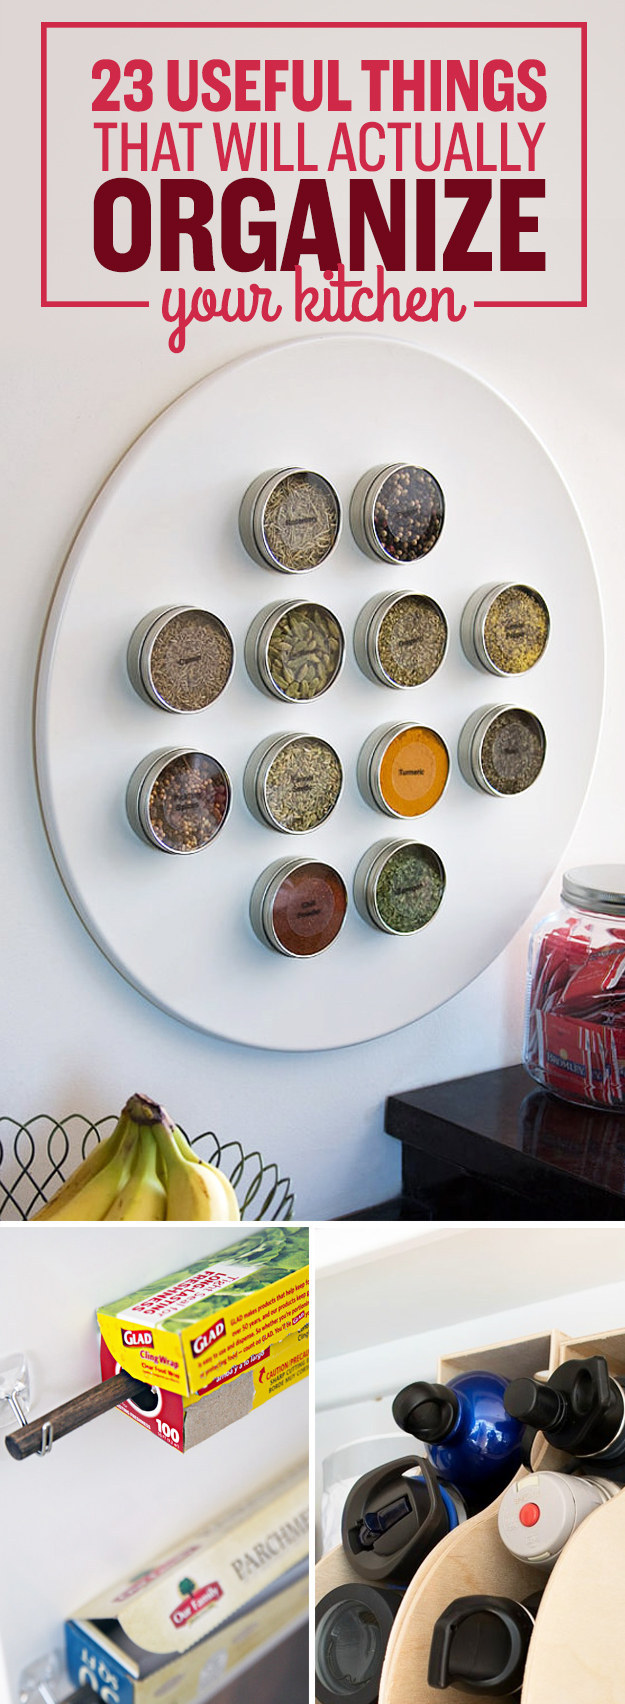 23 Things To Organize Your Kitchen